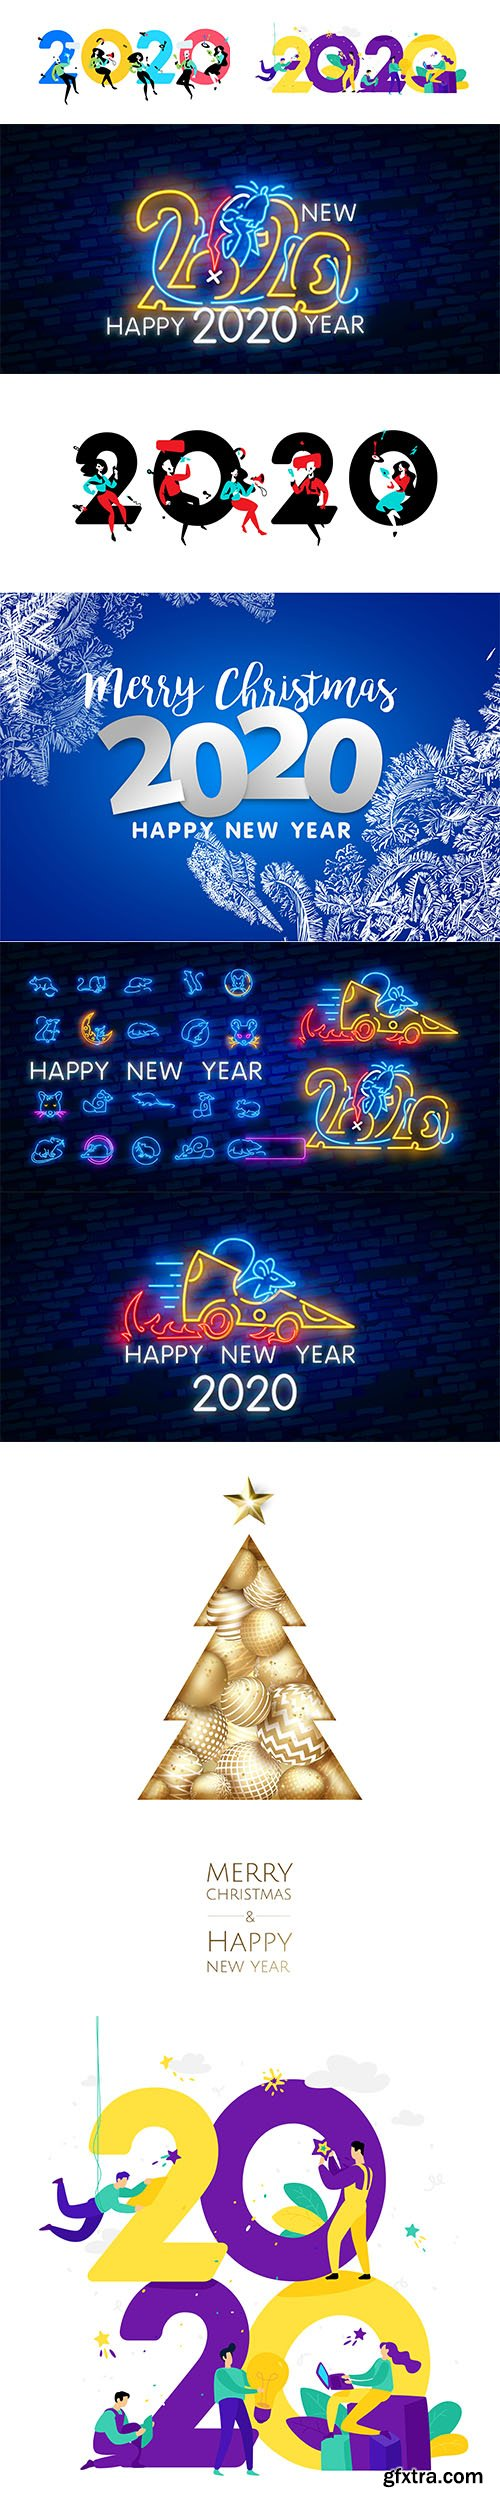 Merry Christmas and Happy New Year 2020 Illustrations Set 1